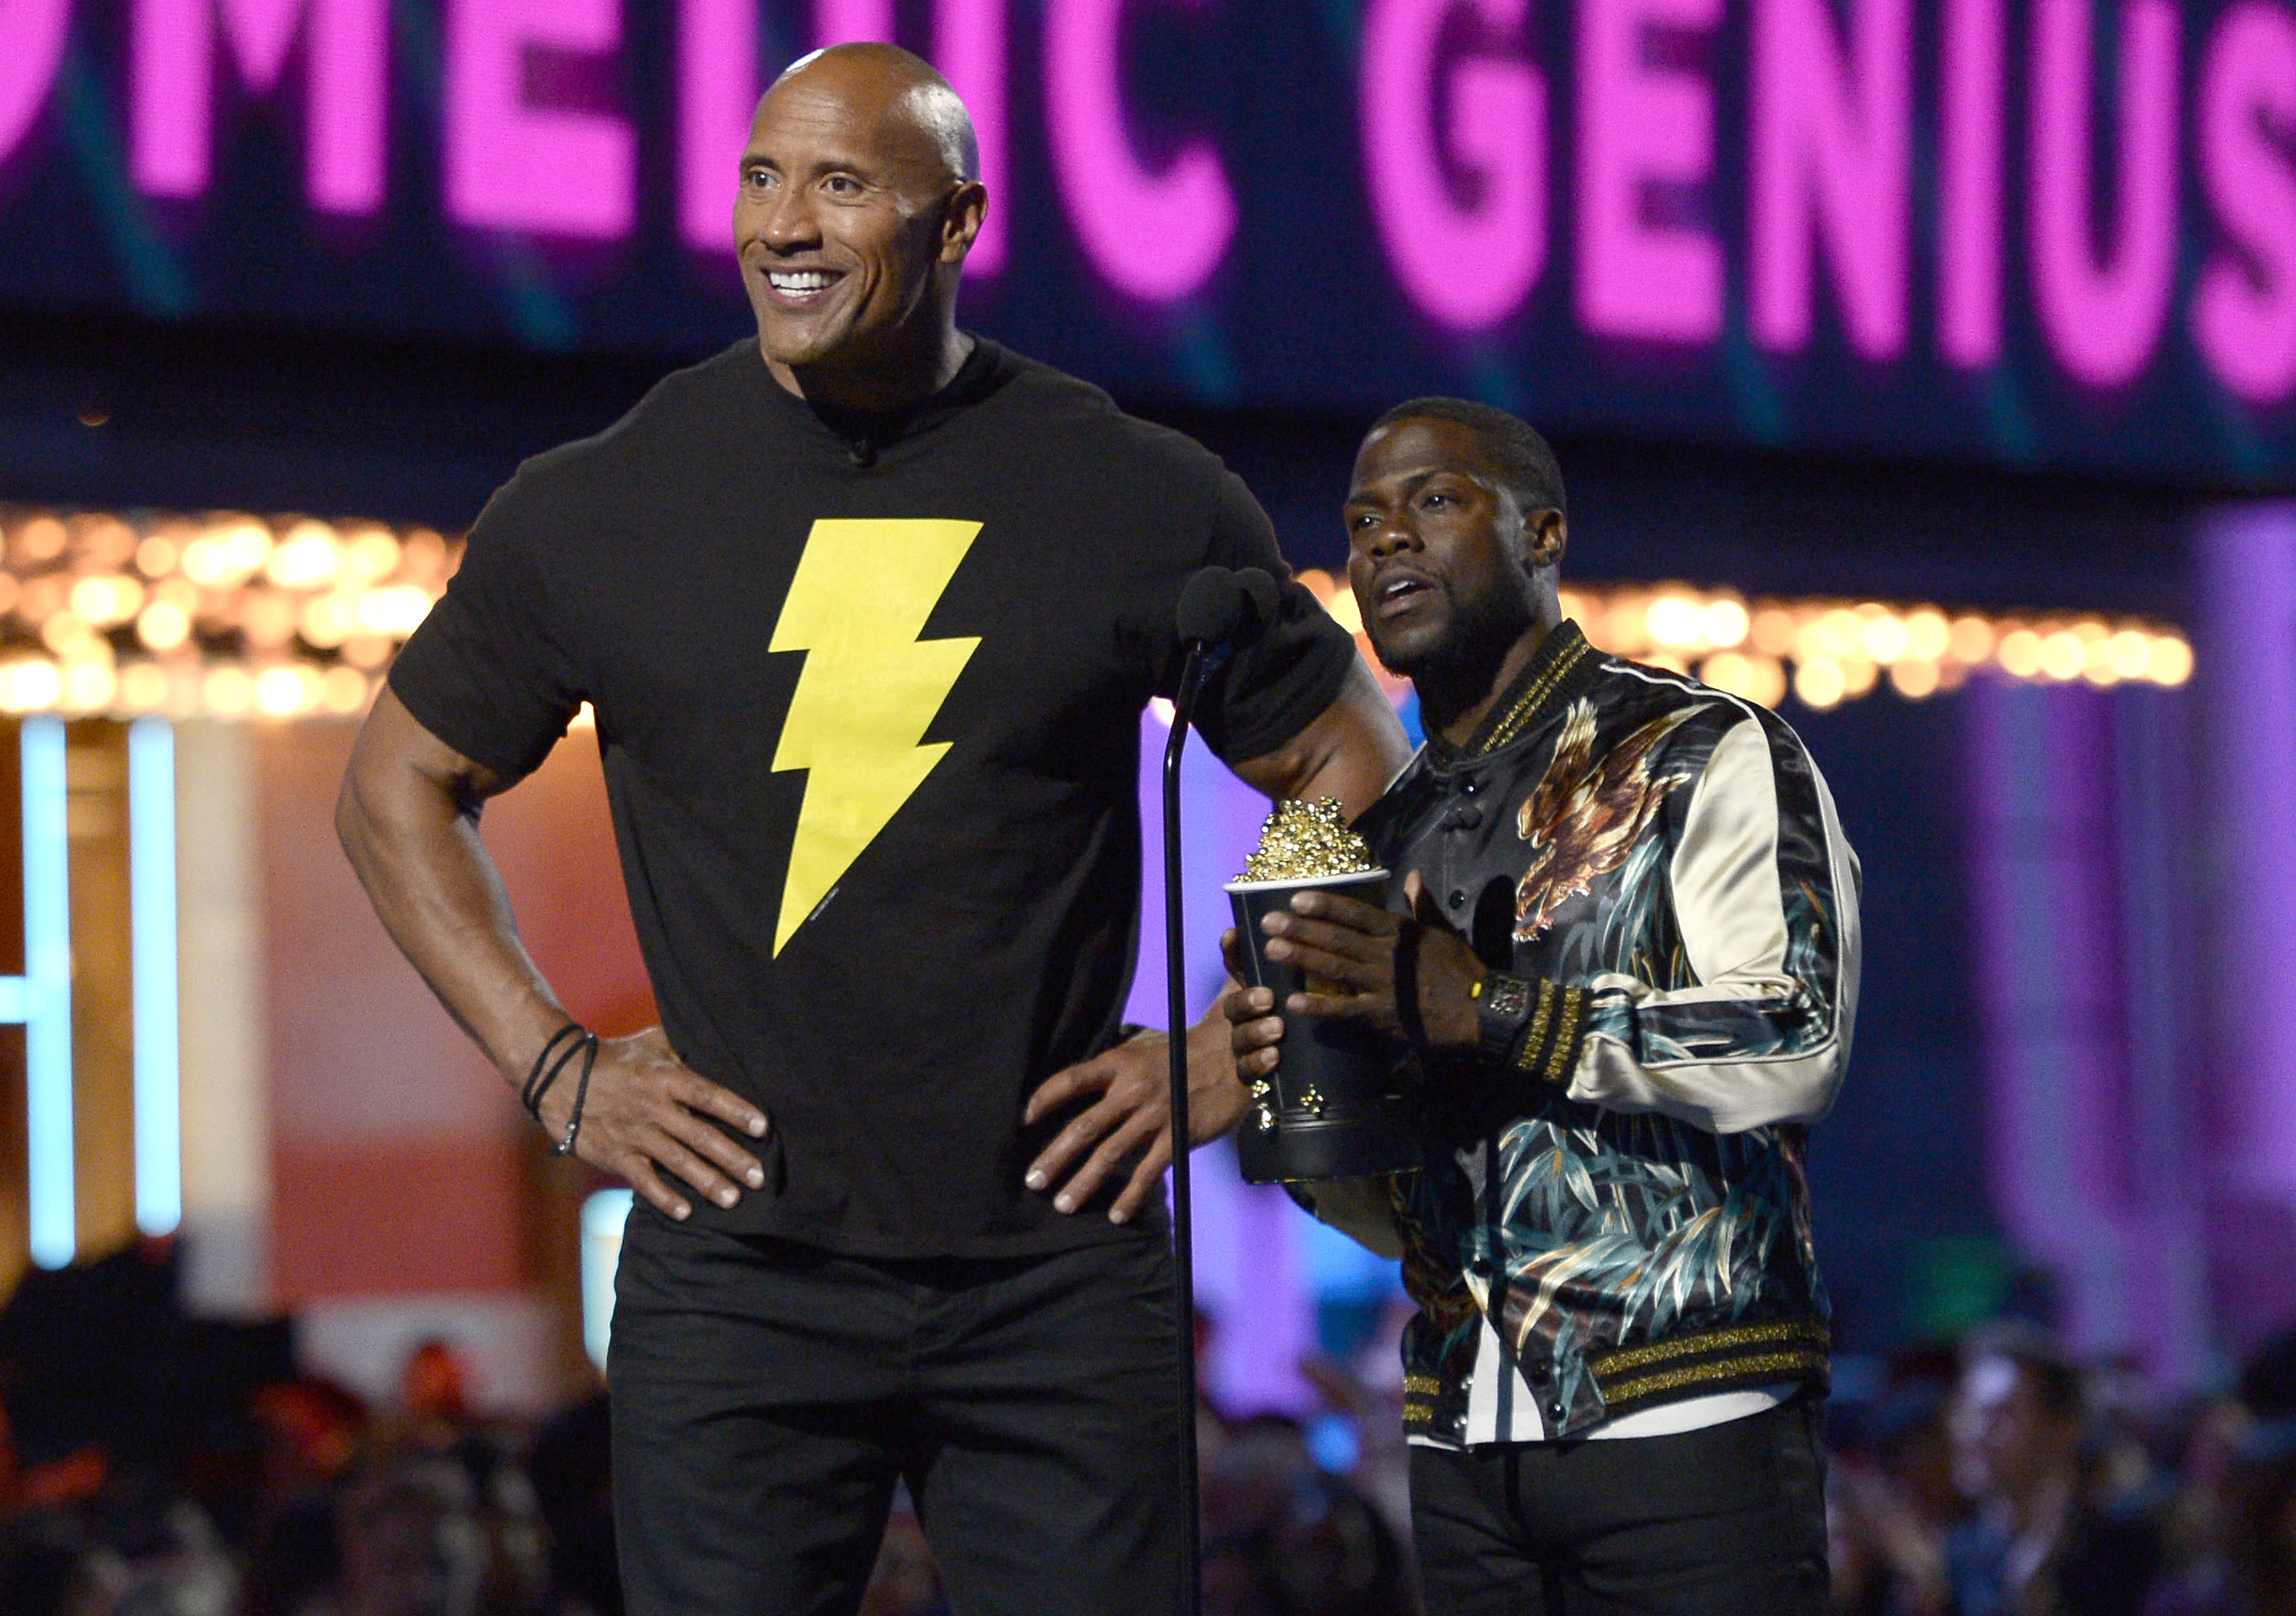 Dwayne Johnson, left, and Kevin Hart present the best comedic genius award at the MTV Movie Awards at Warner Bros. Studio on Saturday, April 9, 2016, in Burbank, Calif. (Kevork Djansezian/Pool Photo via AP)